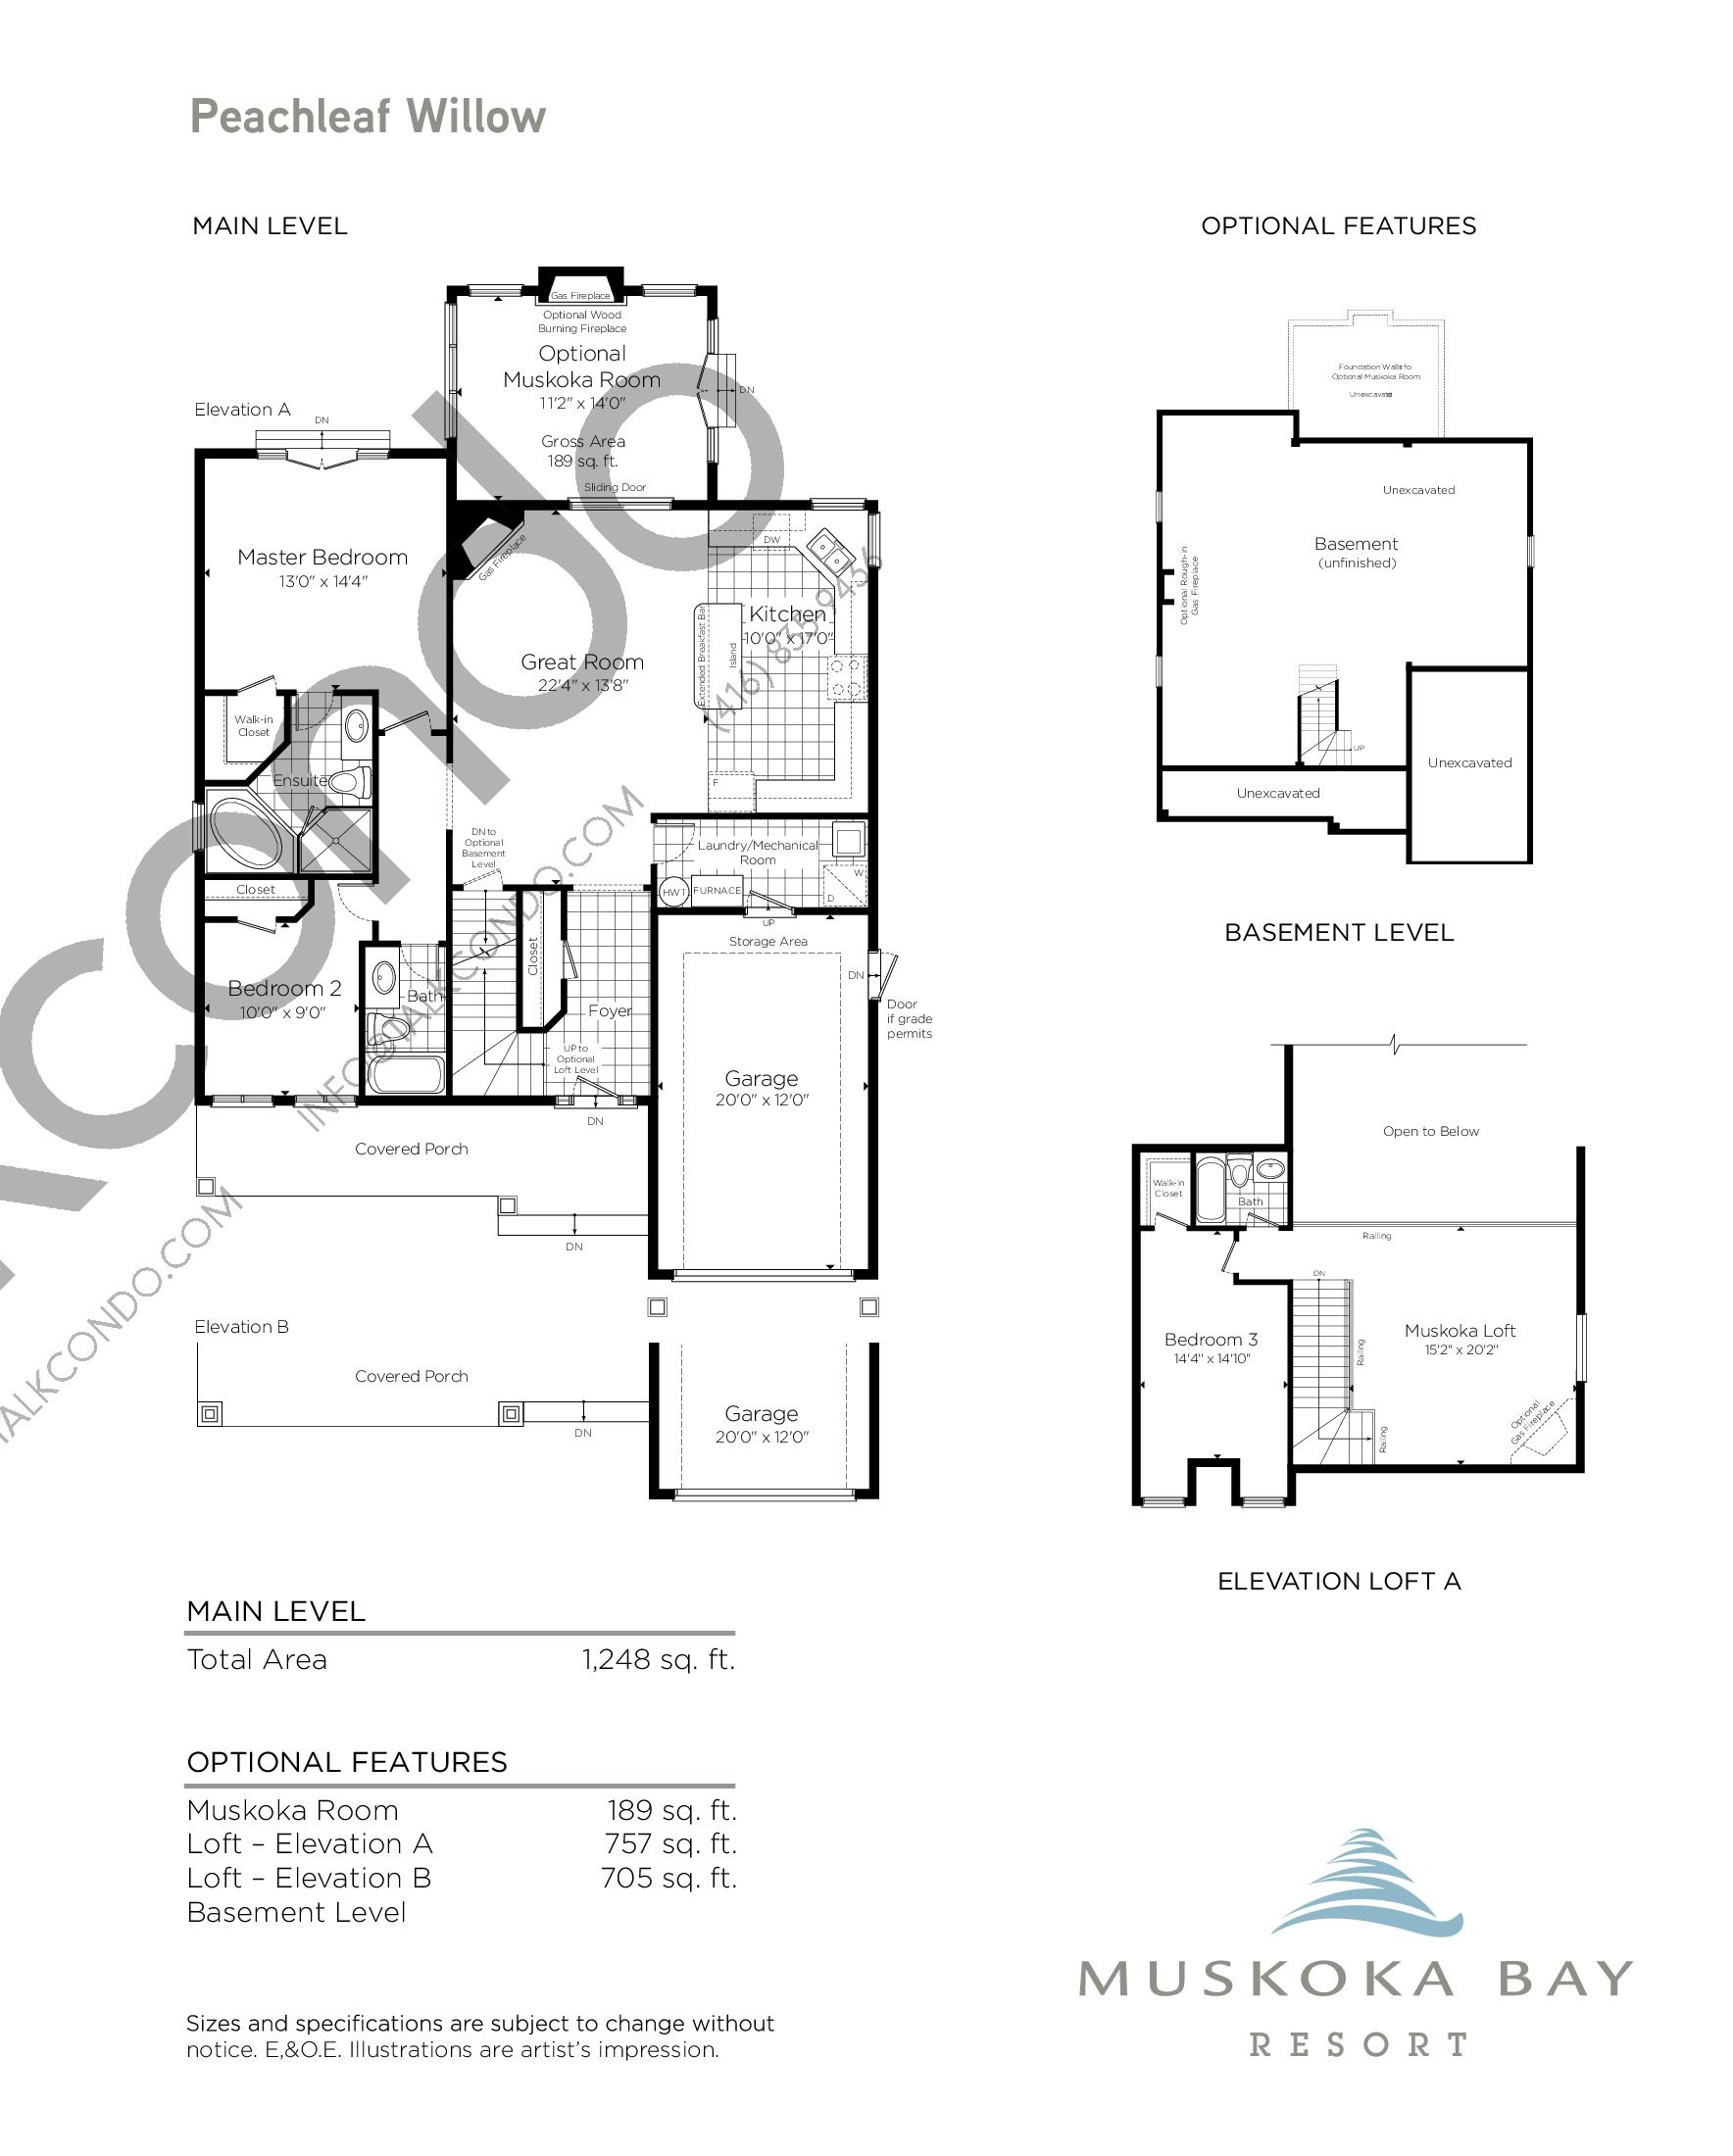 Peachleaf Willow Floor Plan at Muskoka Bay Resort - 2194 sq.ft